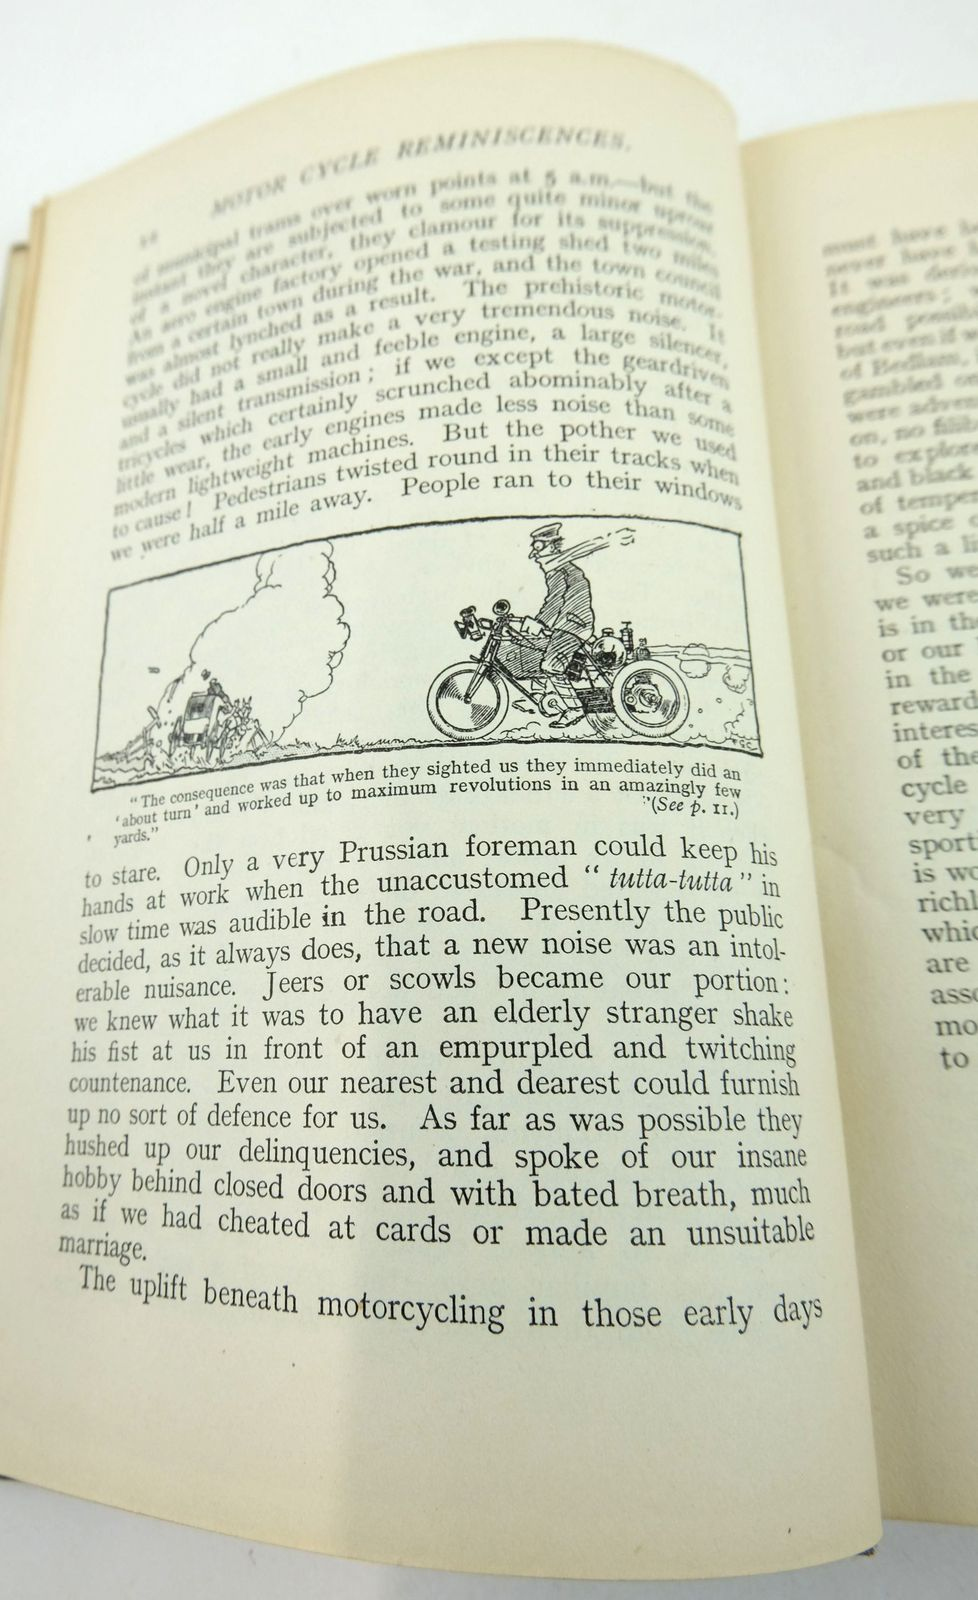 Photo of MOTOR CYCLE REMINISCENCES written by Ixion, published by Iliffe & Sons Limited (STOCK CODE: 1819460)  for sale by Stella & Rose's Books